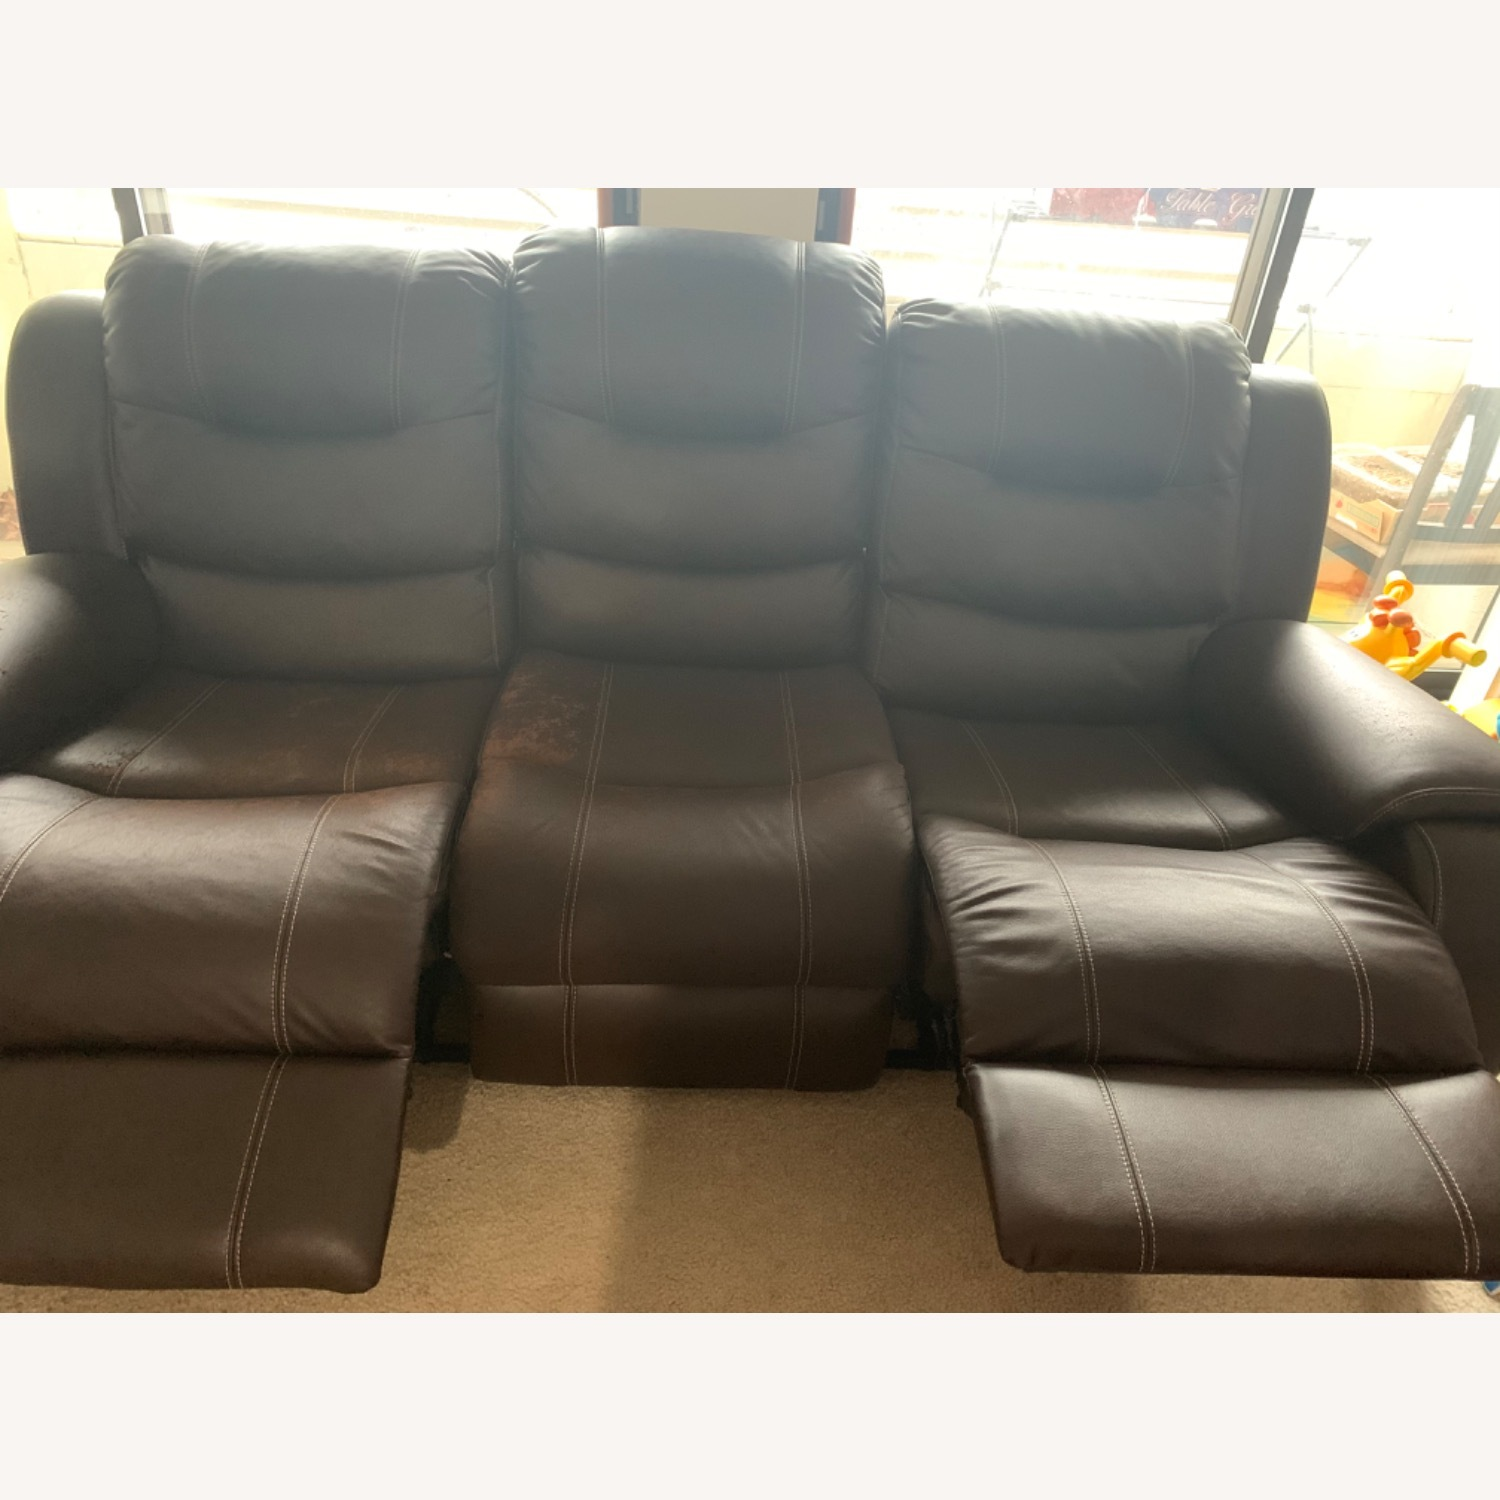 Rooms To Go Manual 3-seat Recliner - image-1